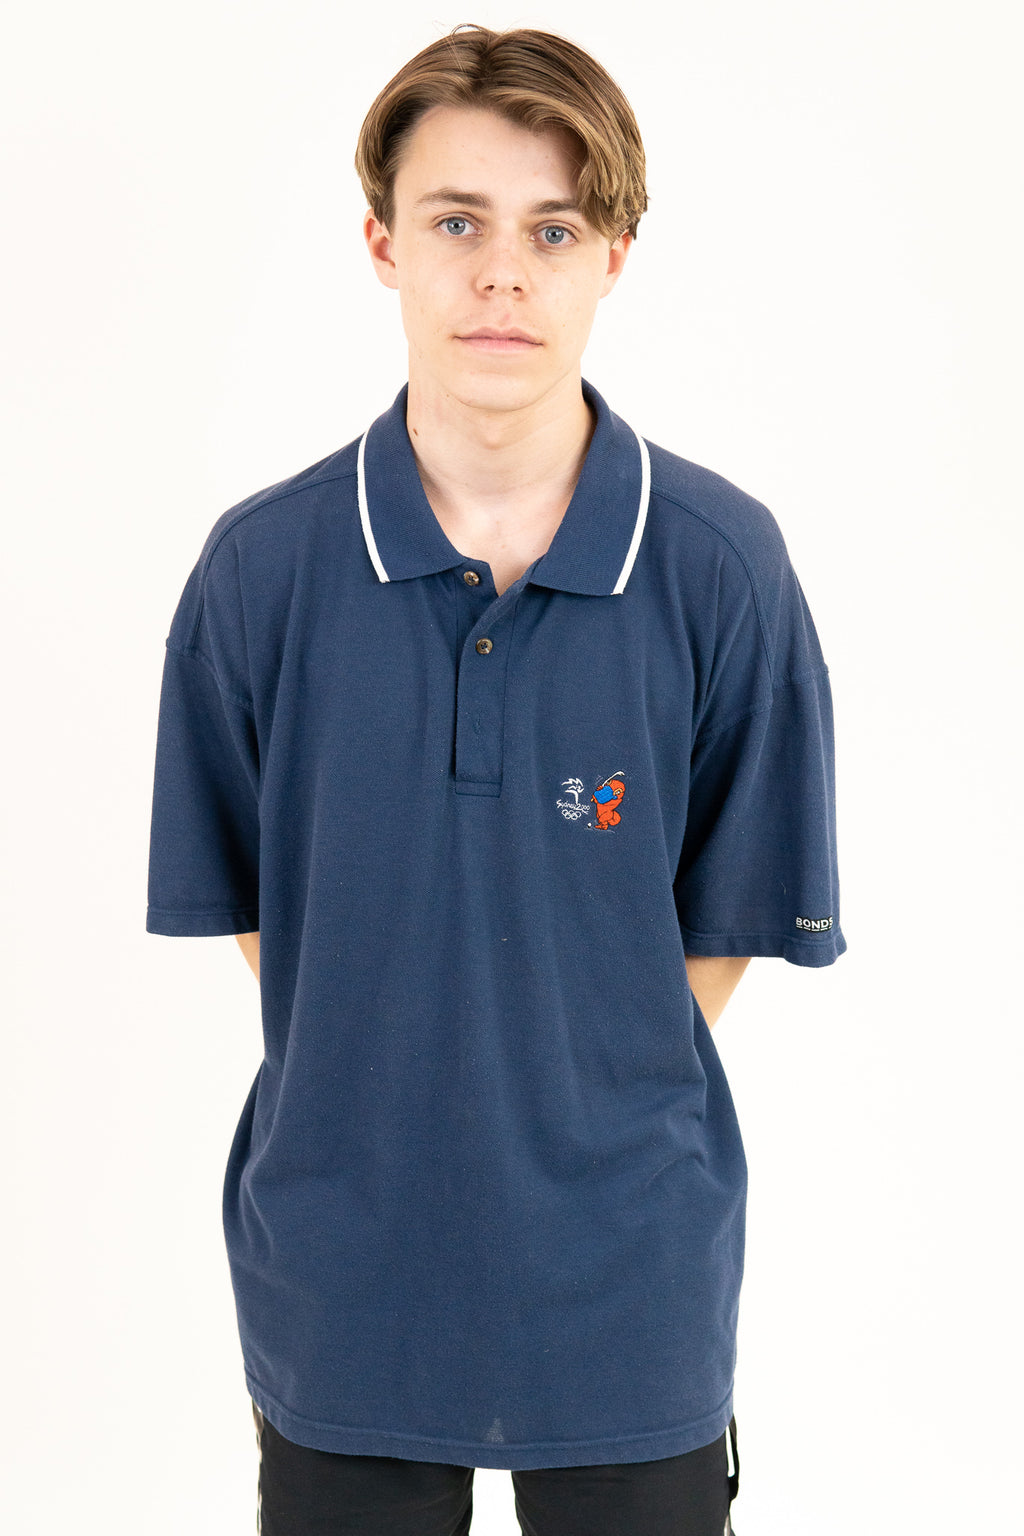 Vintage Sydney 2000 Golf Polo / Size XL